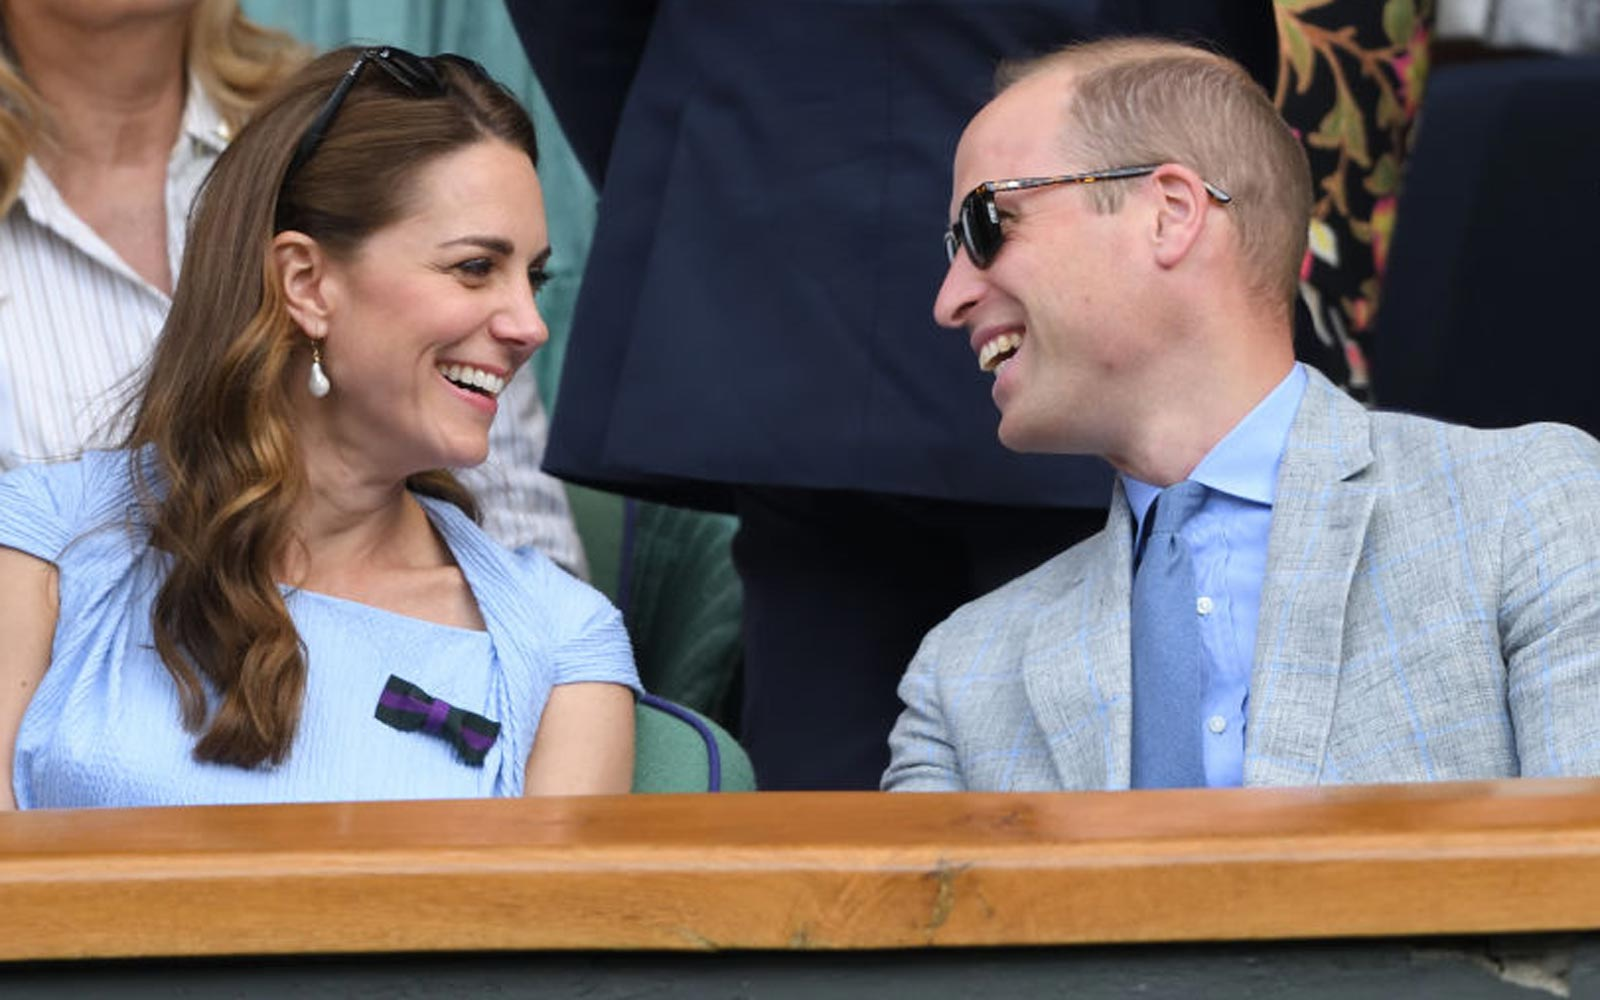 Kate Middleton and Prince William Will Make Just One More Appearance This Summer